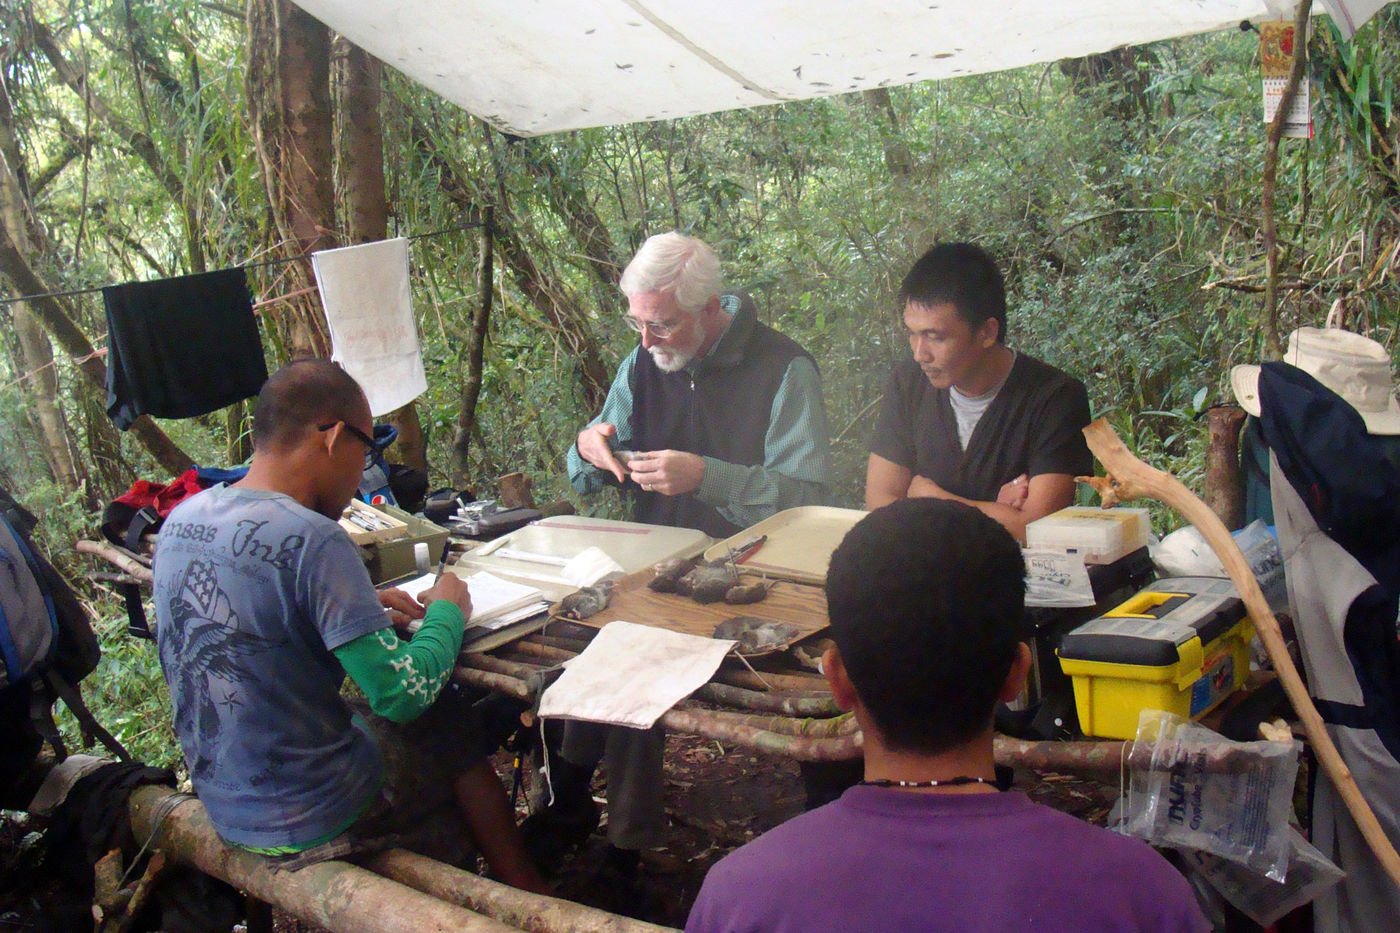 Four people sit around a table under a tarp in the middle of a forest. They work with small mammal specimens.